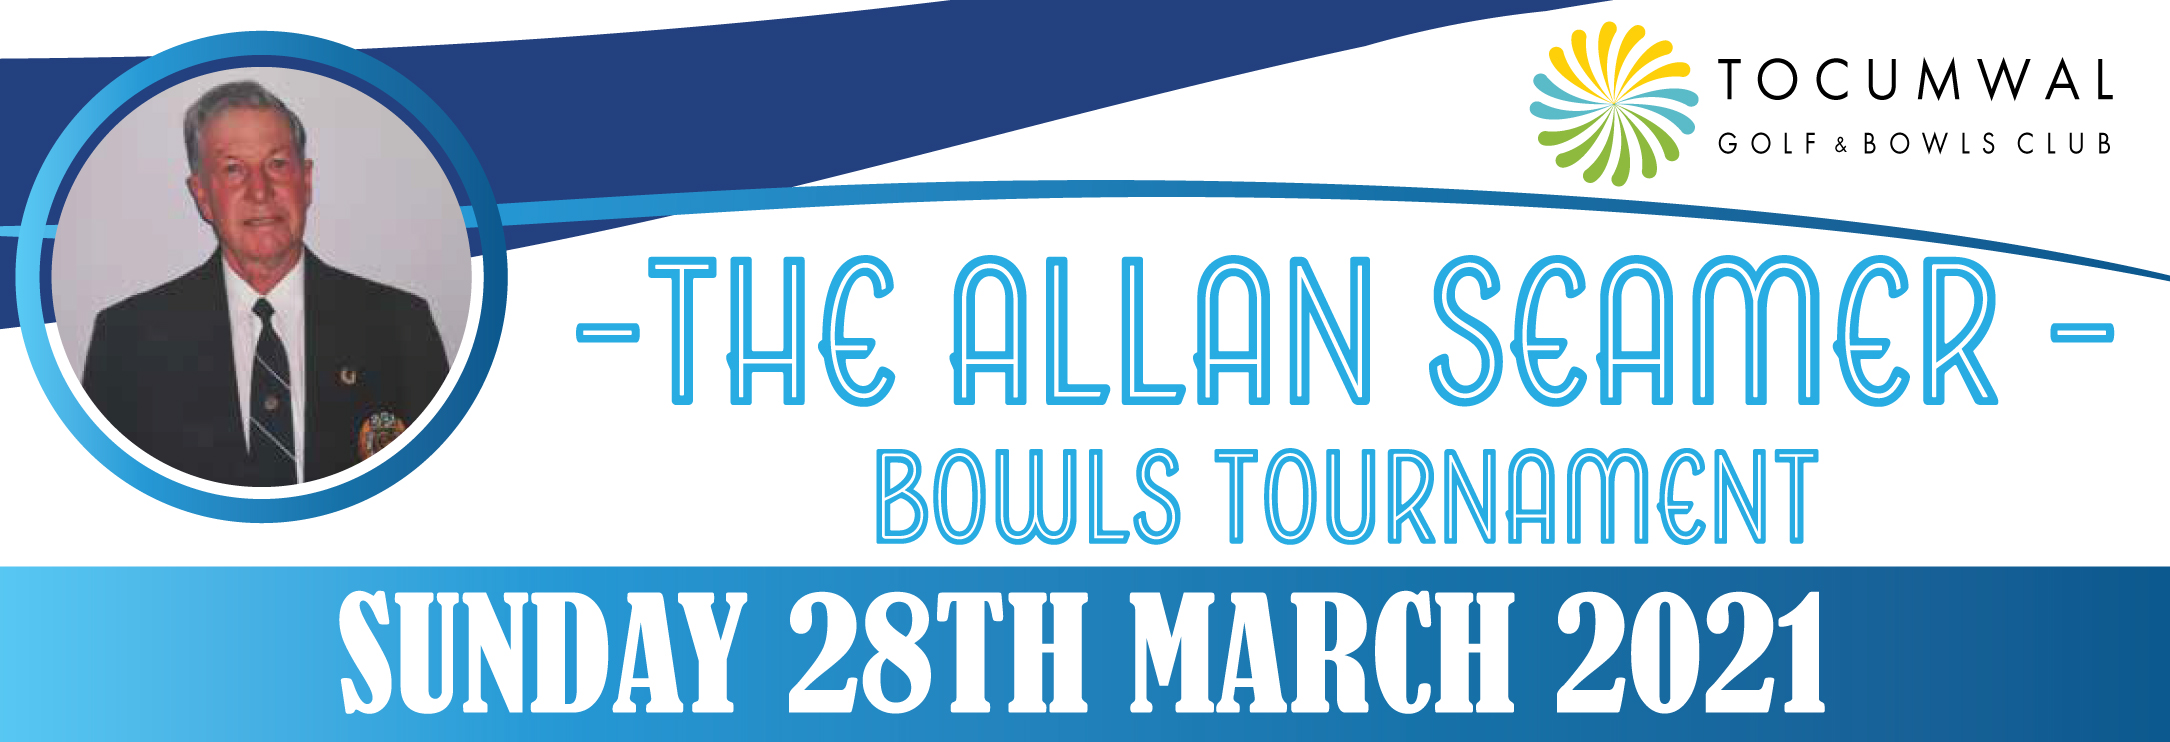 Allan-Seamer-Tournament-2021-banner